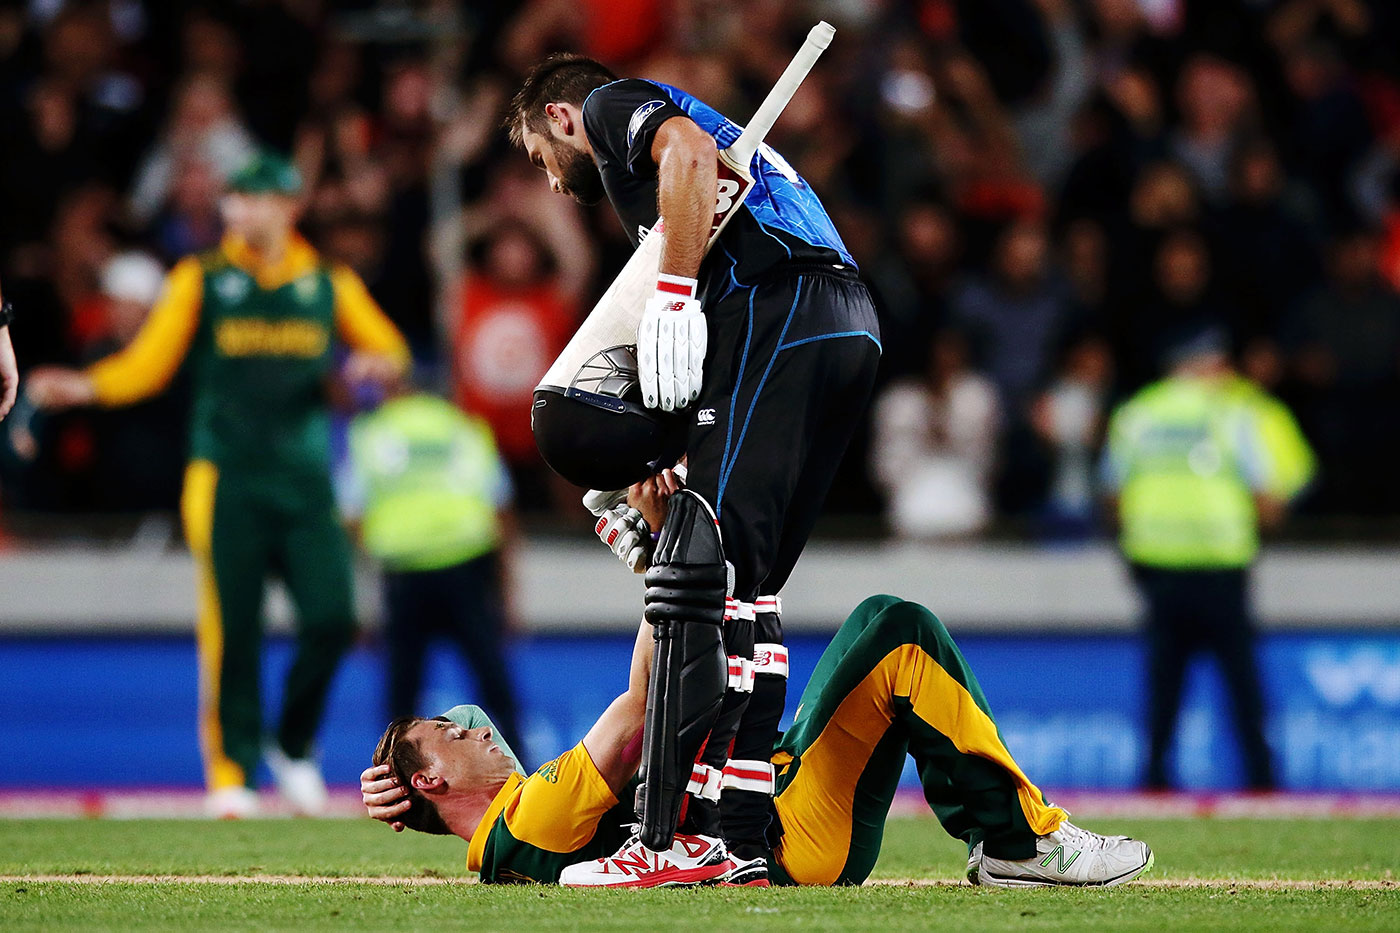 Gracious in victory: Grant Elliott helps Dale Steyn up after New Zealand won a thrilling game to qualify for their first World Cup win